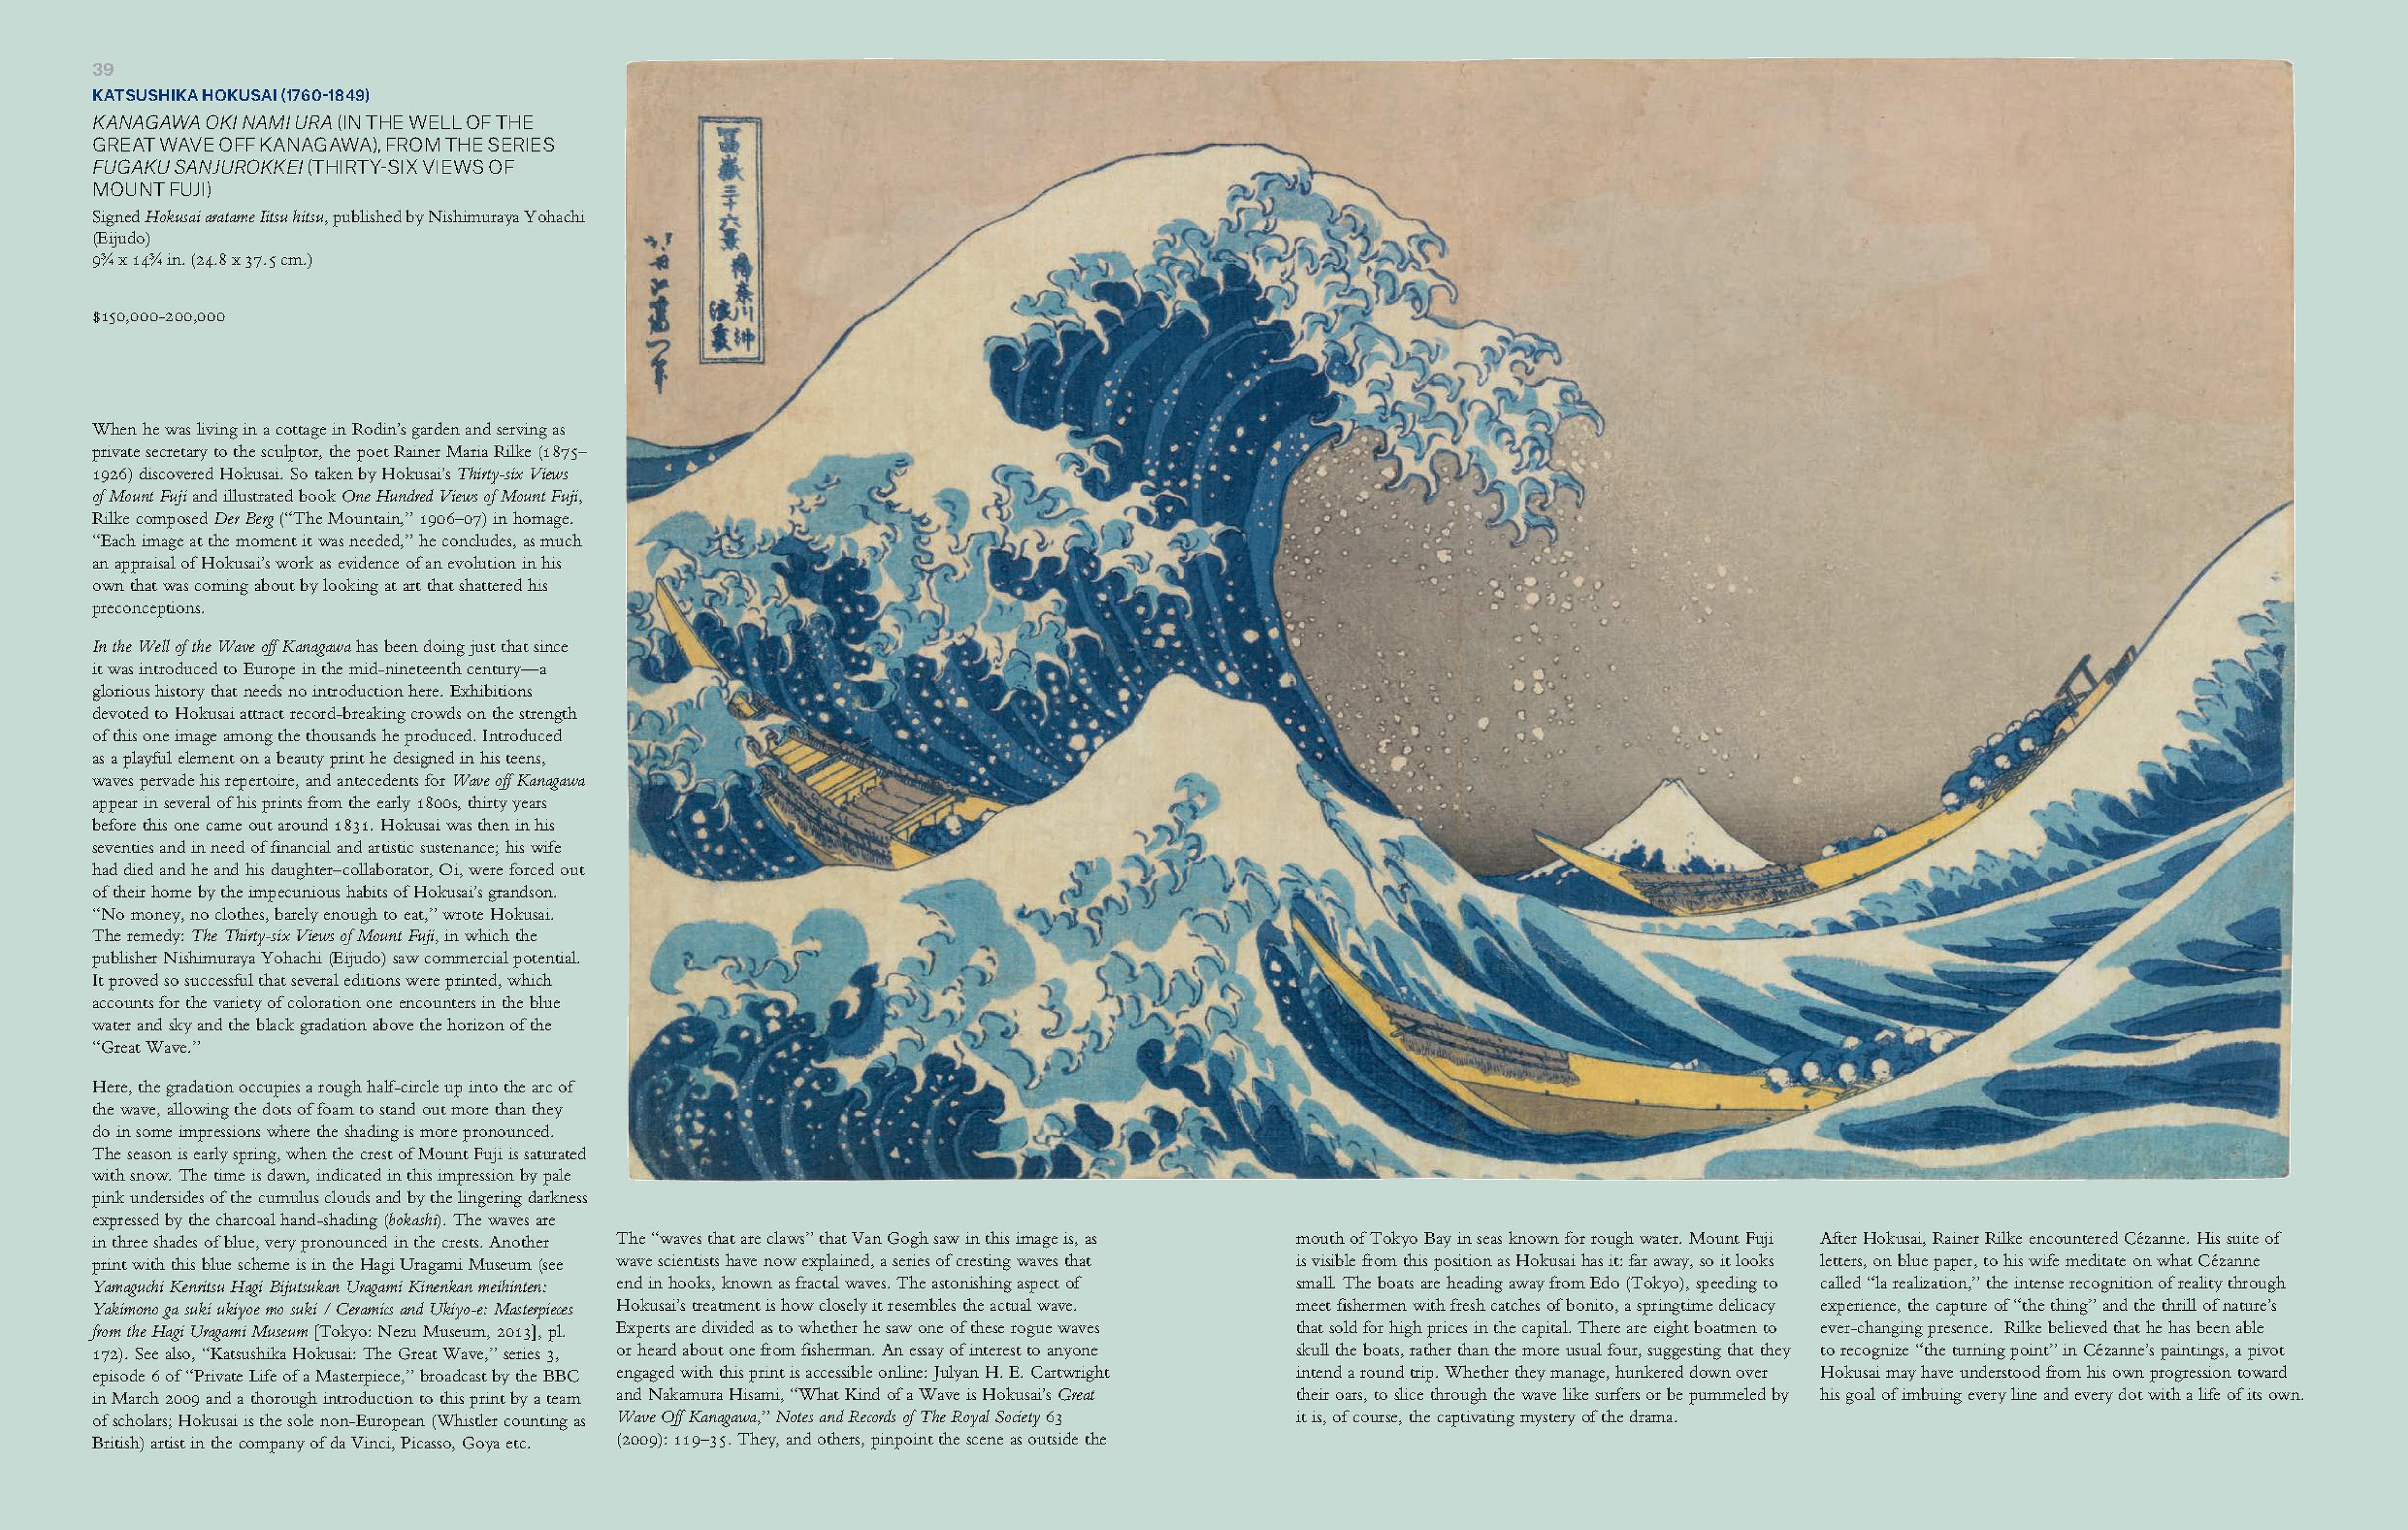 Kanagawa Oki Nami Ura (In the Well of the Great Wave Off Kanagawa) as shown on pages 39-40 of the catalog for the Christie's auction 'Japanese and Korean Art - 18 April 2018'.   Image from the catalog. Fair use by The Ruggist.